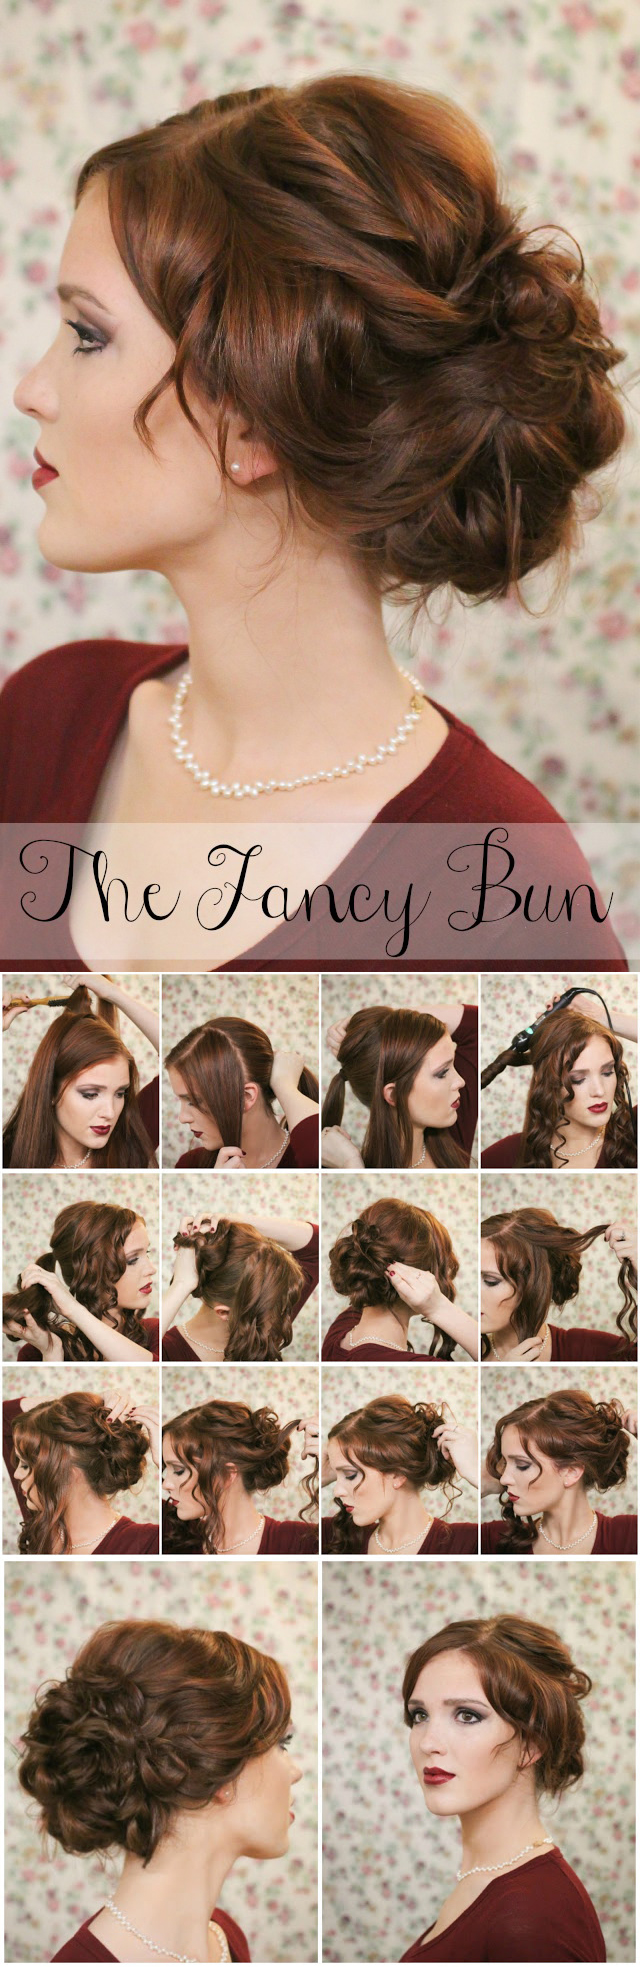 Oh-So-Simple-Bun-Hairstyles-Tutorials-The-Fancy-Bun